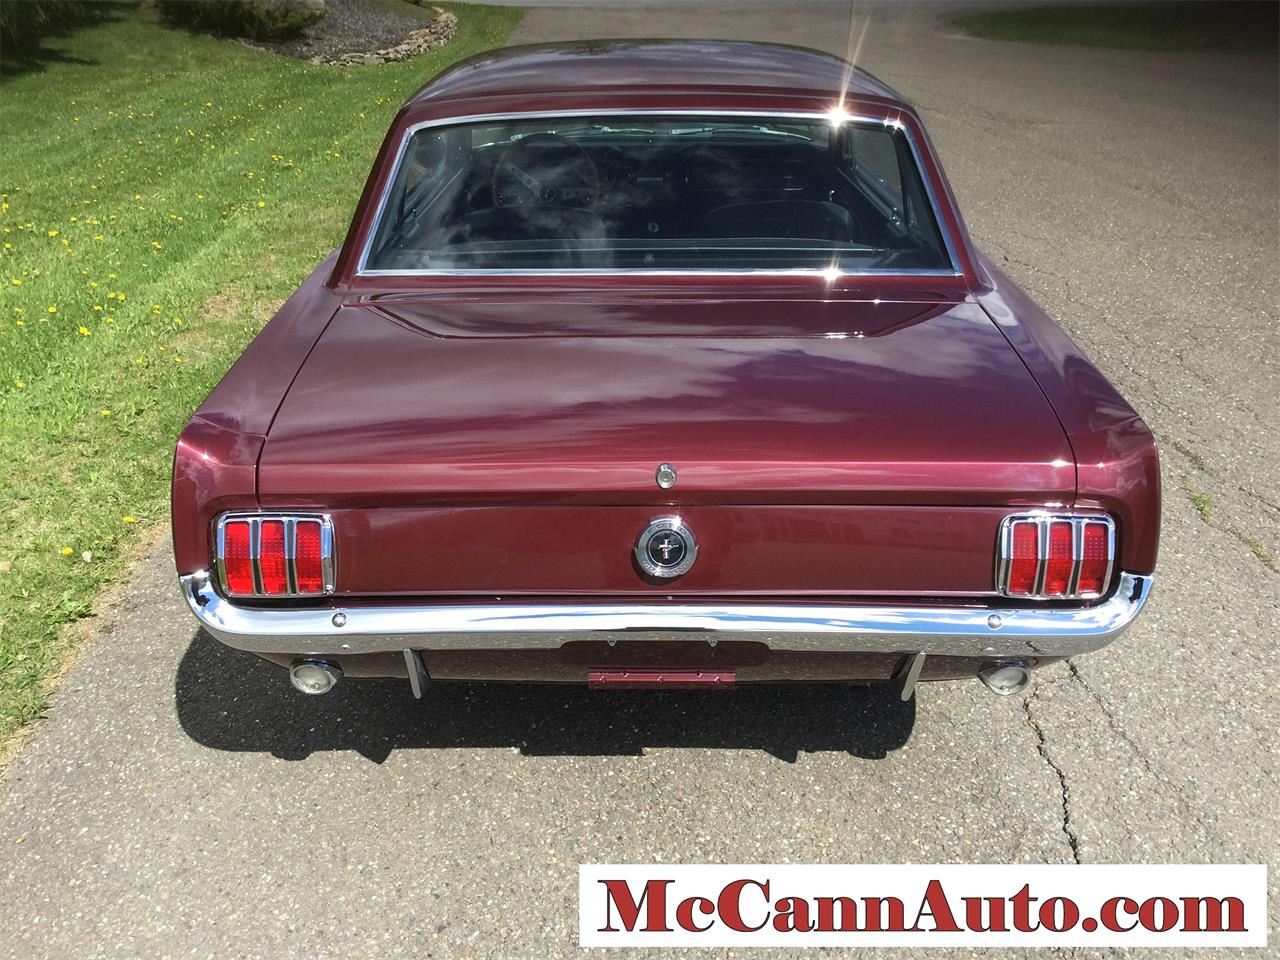 Large Picture of '65 Mustang - $14,995.00 - J8WB